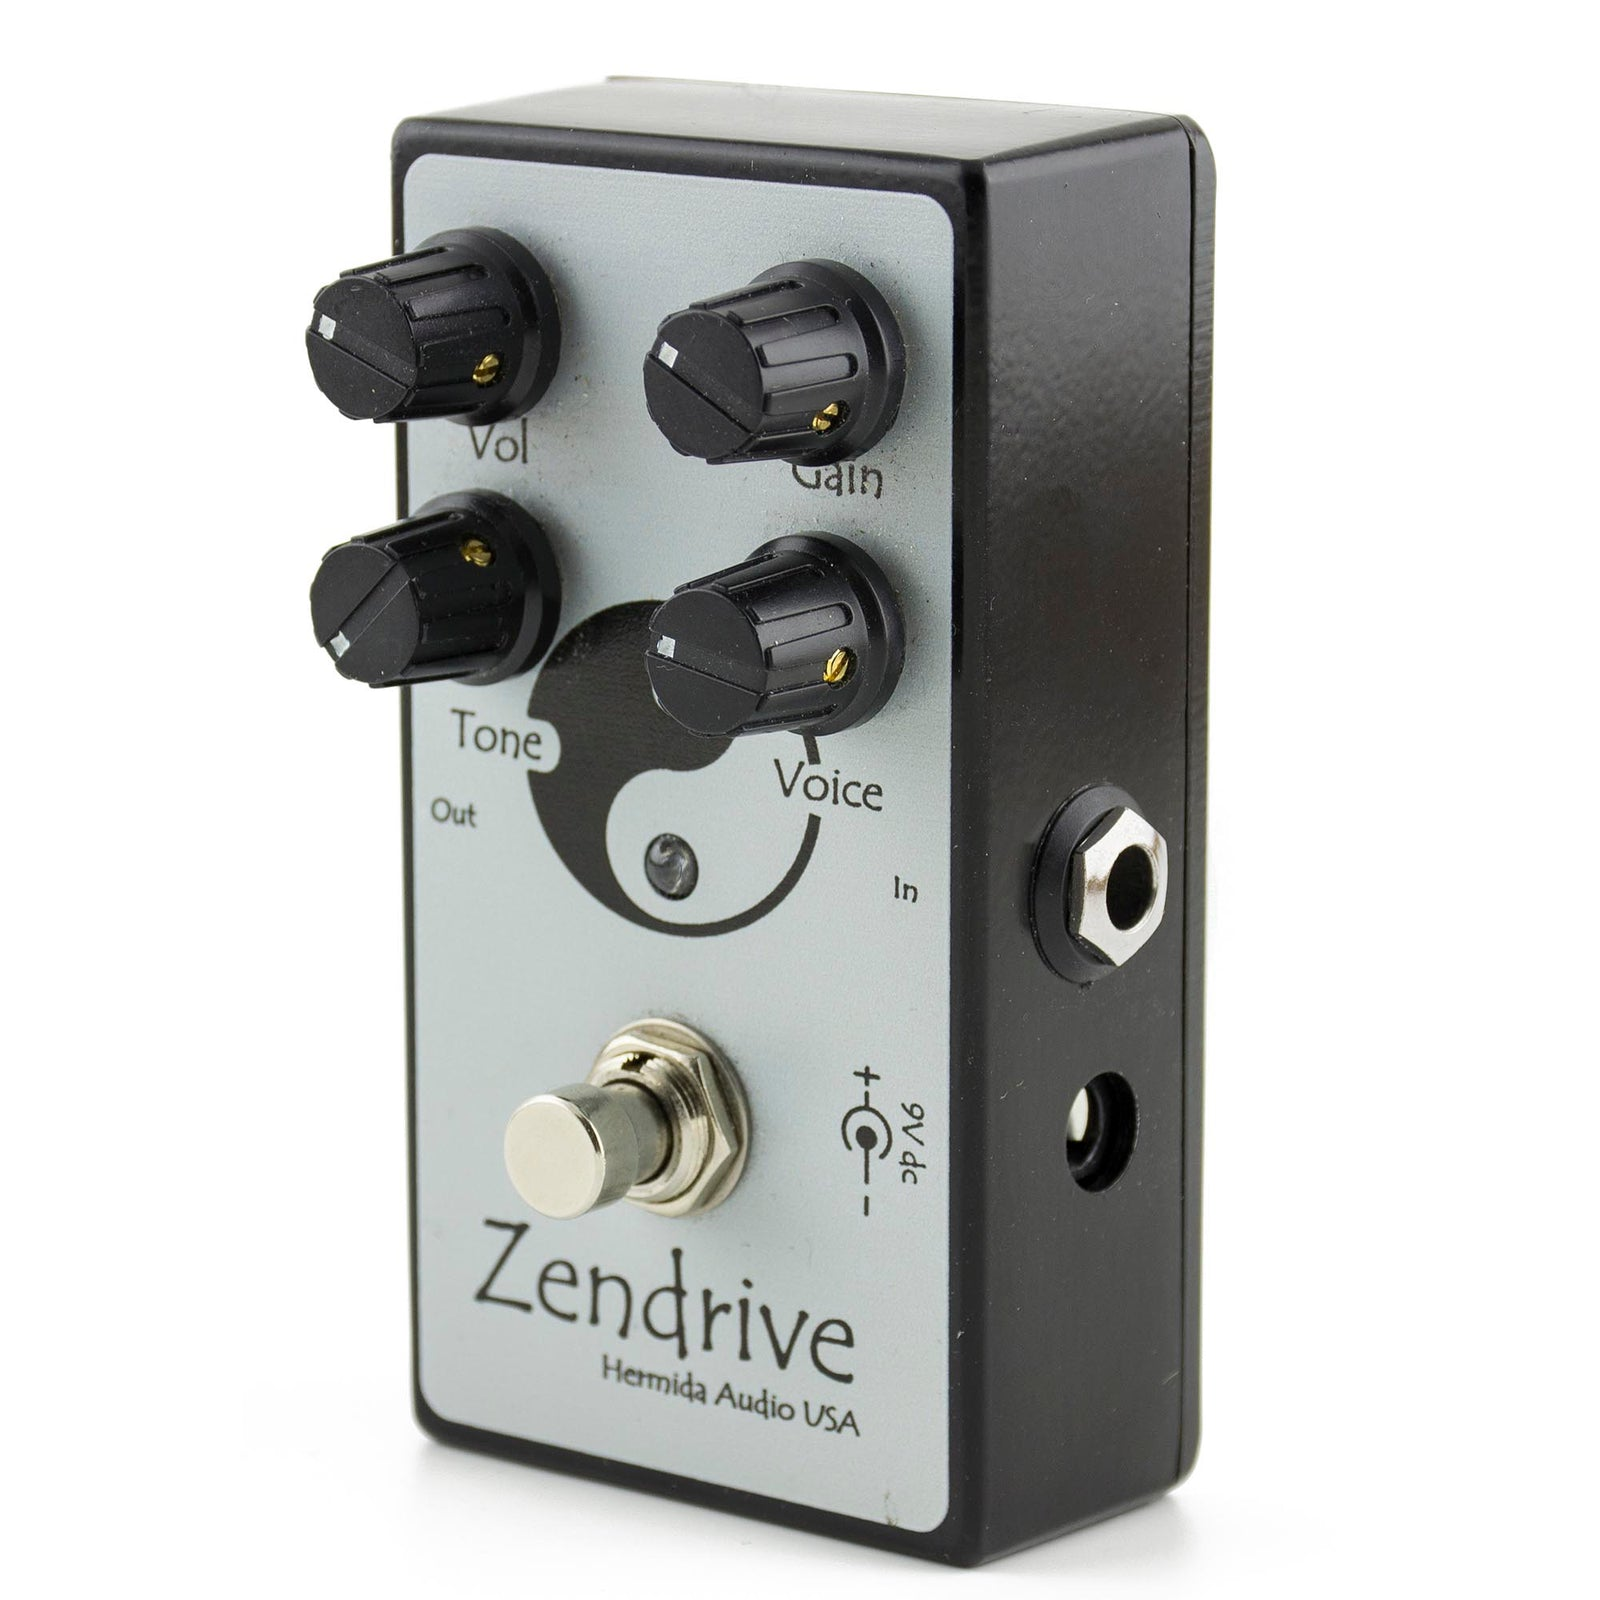 Hermida Audio Zendrive - Used